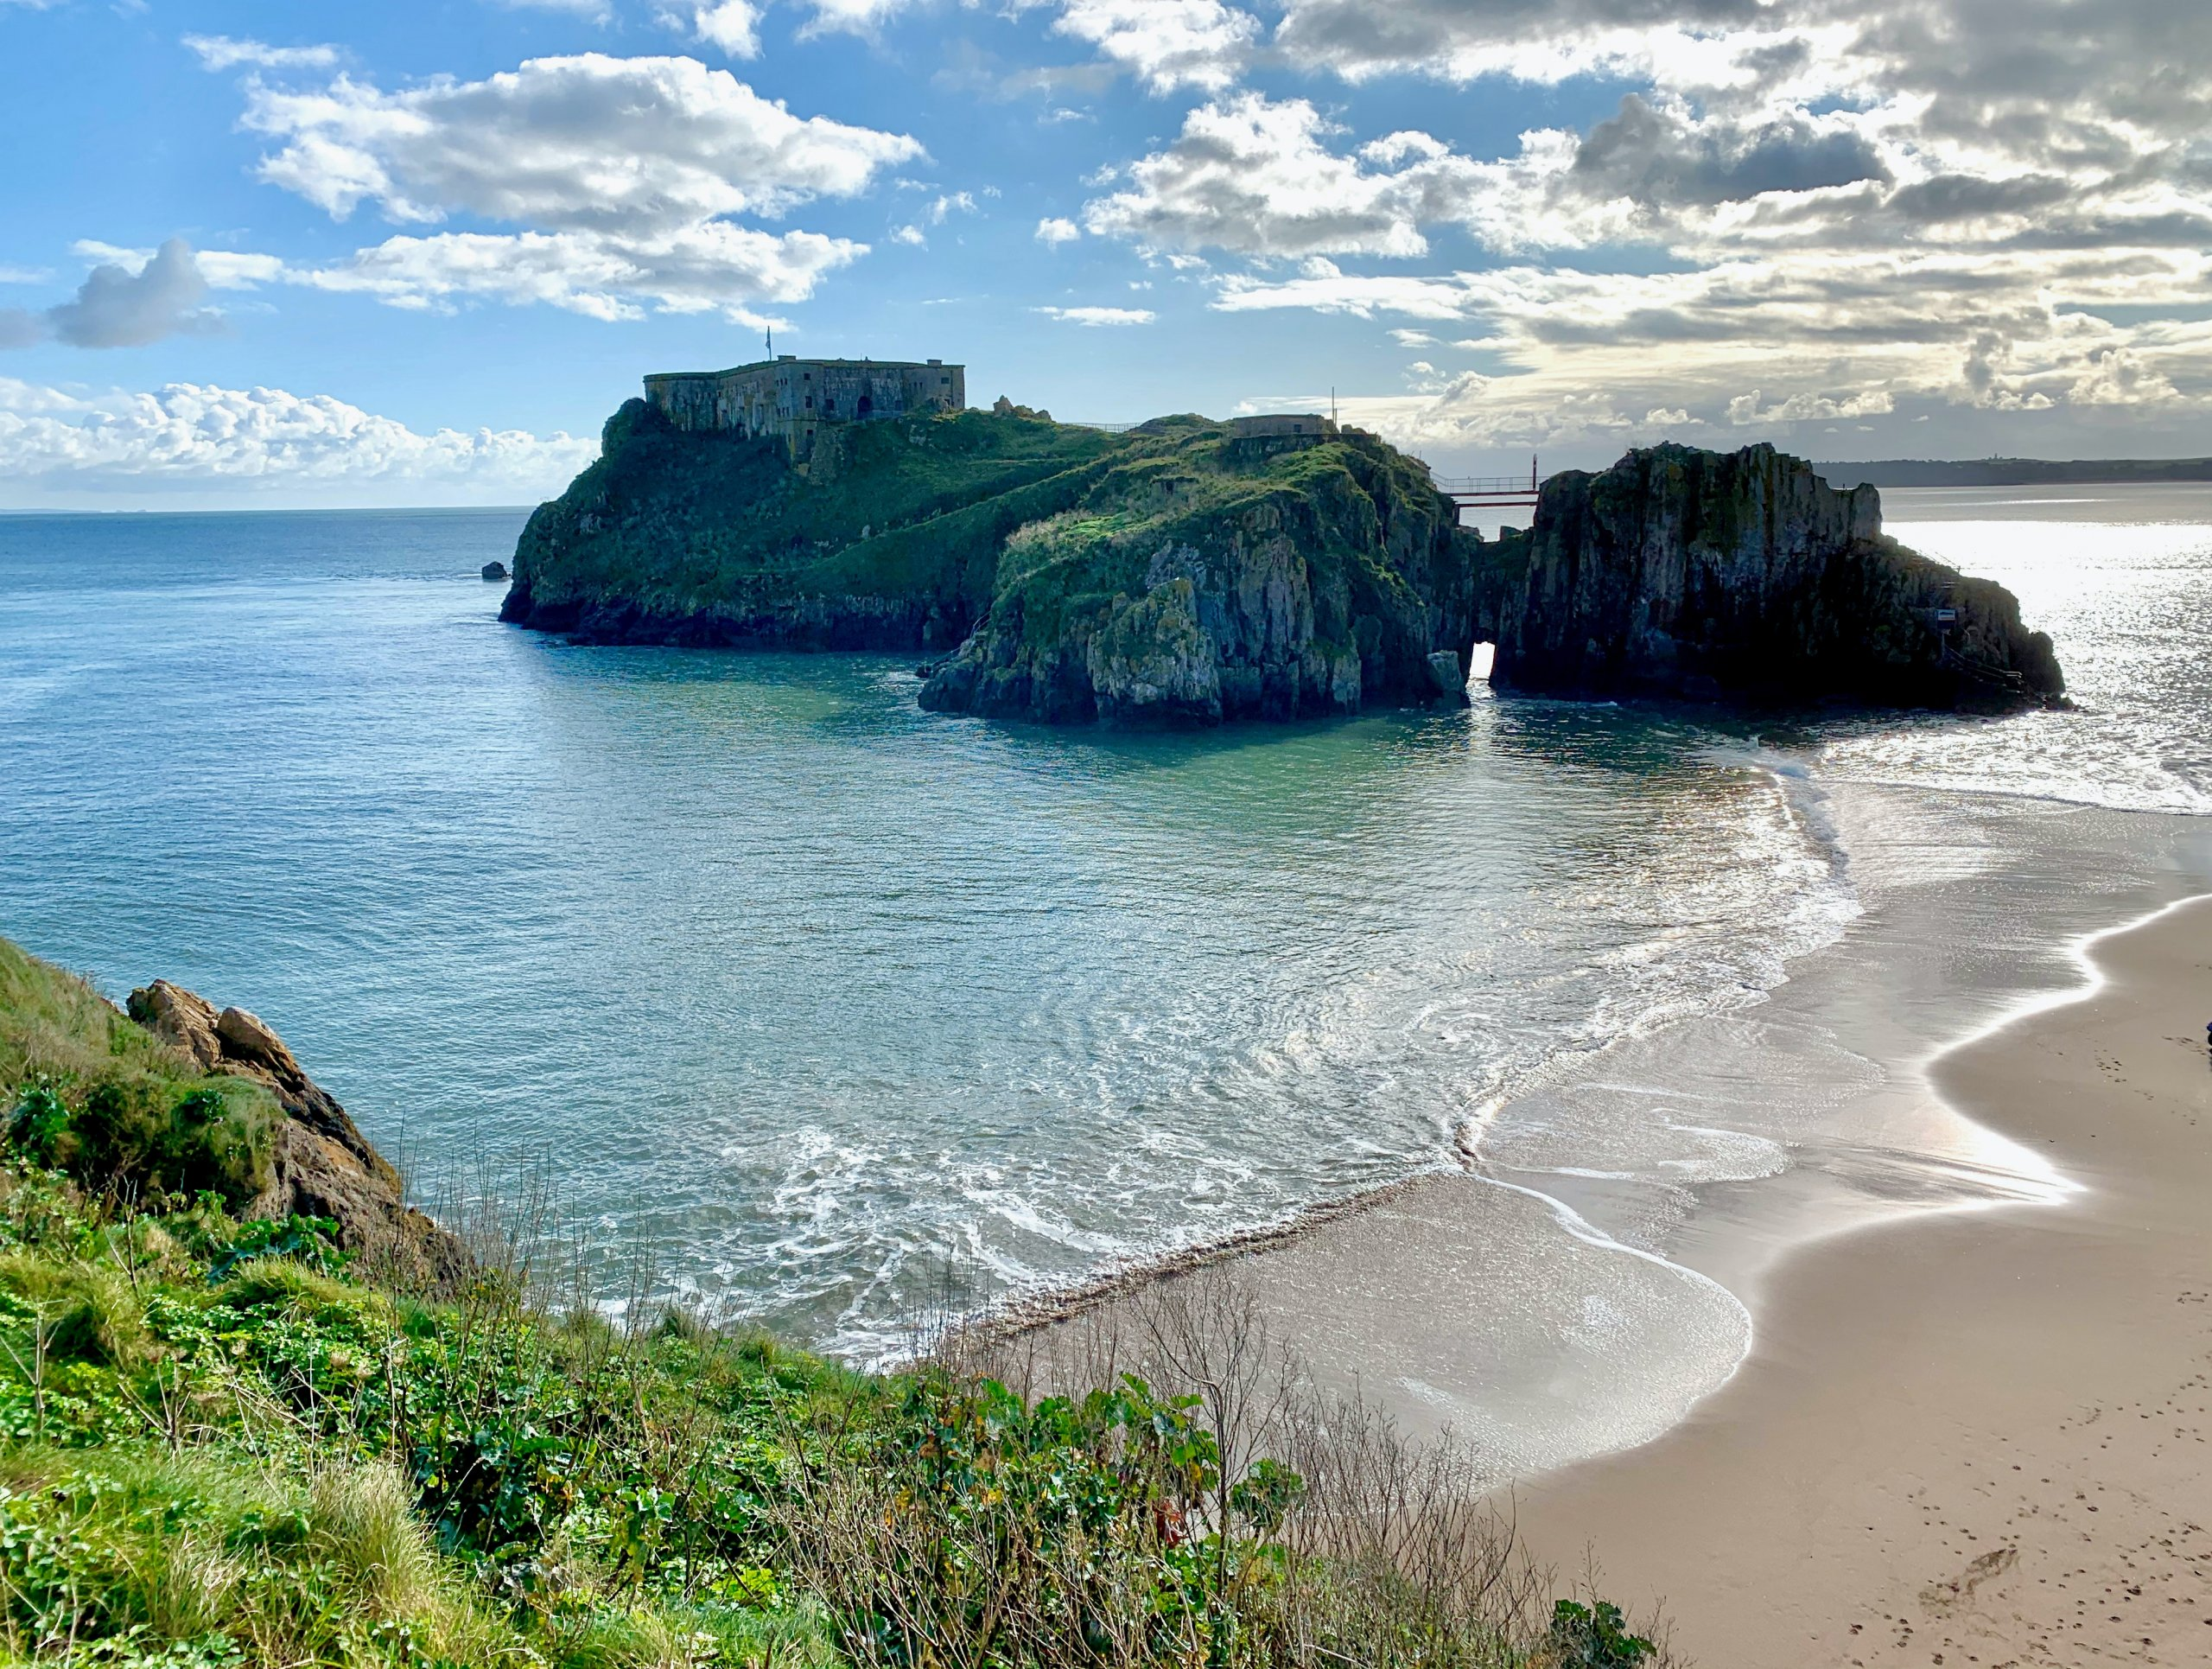 Sandy beach and calm ocean with three islands in ocean and fort atop the left most island at Tenby in Pembrokeshire